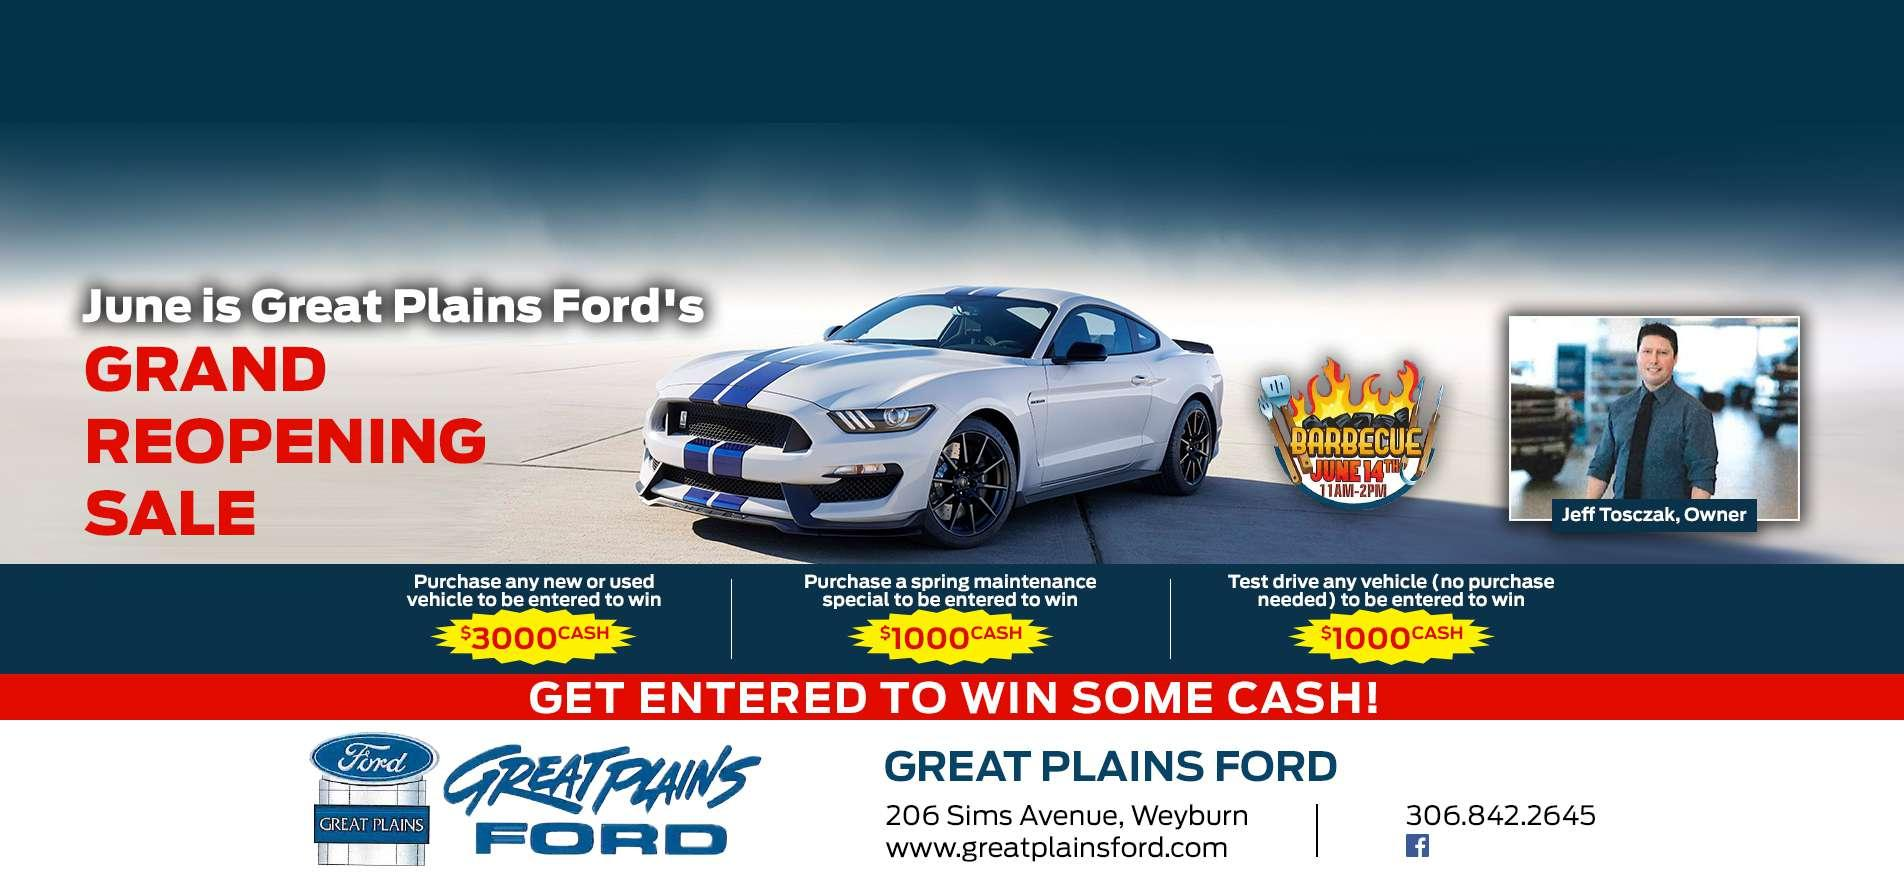 Great Plains Ford